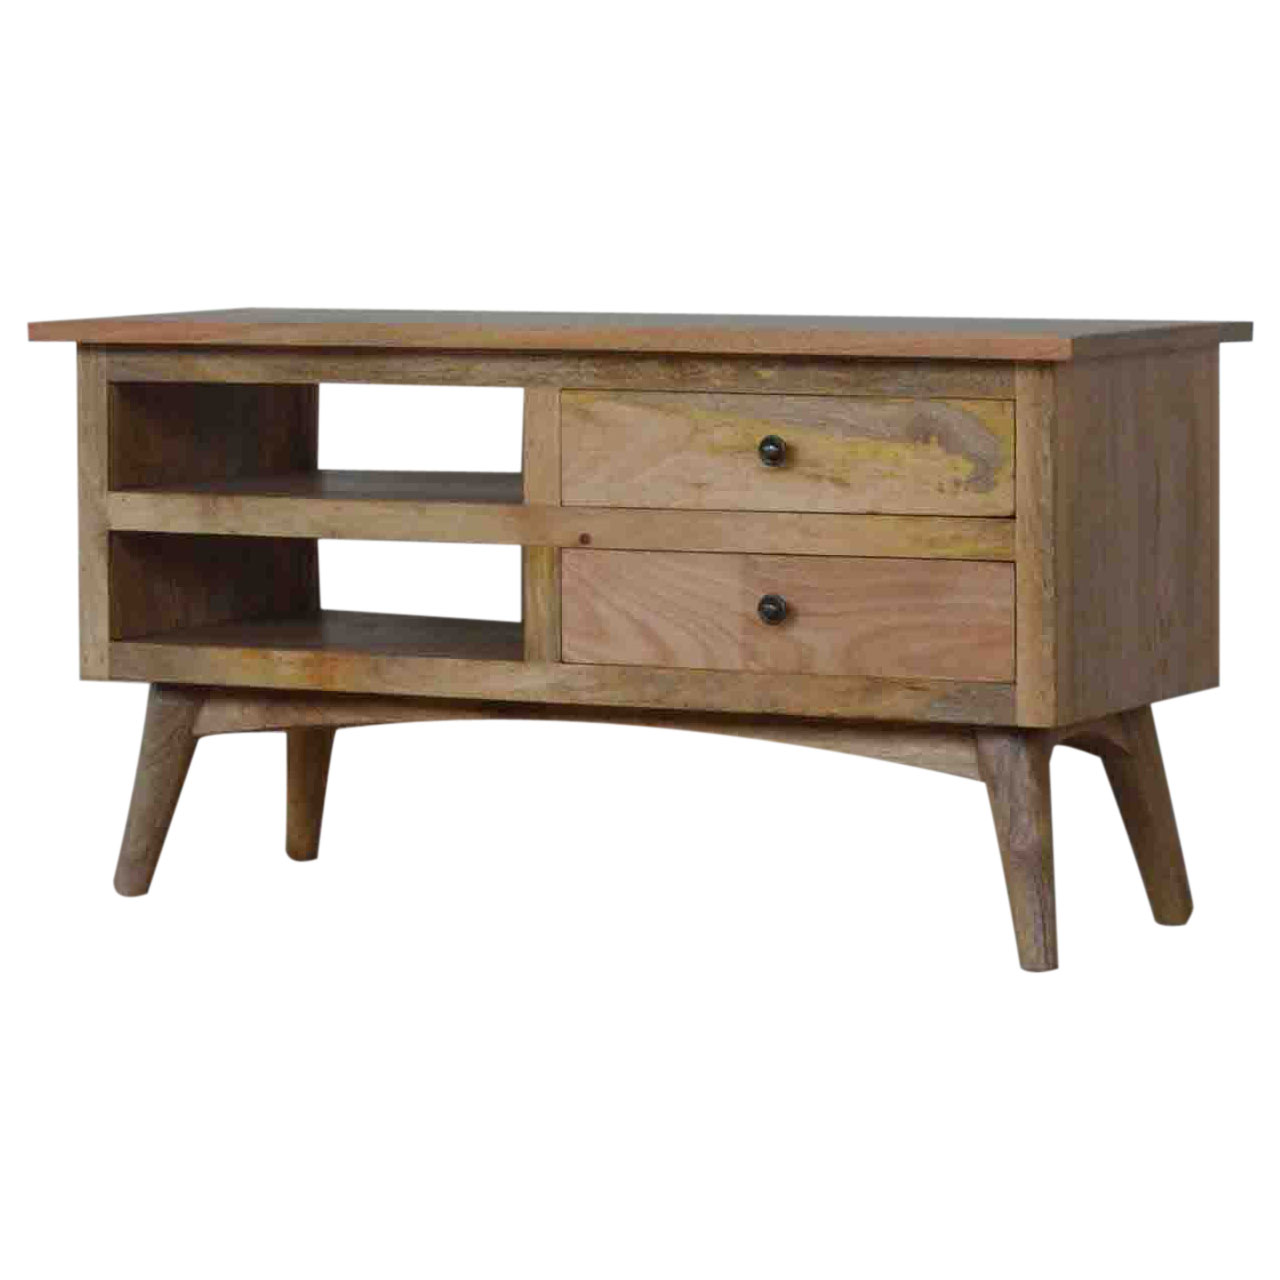 IN040 TV Stand for TVs up to 37 inch 2 Drawers and Shelf